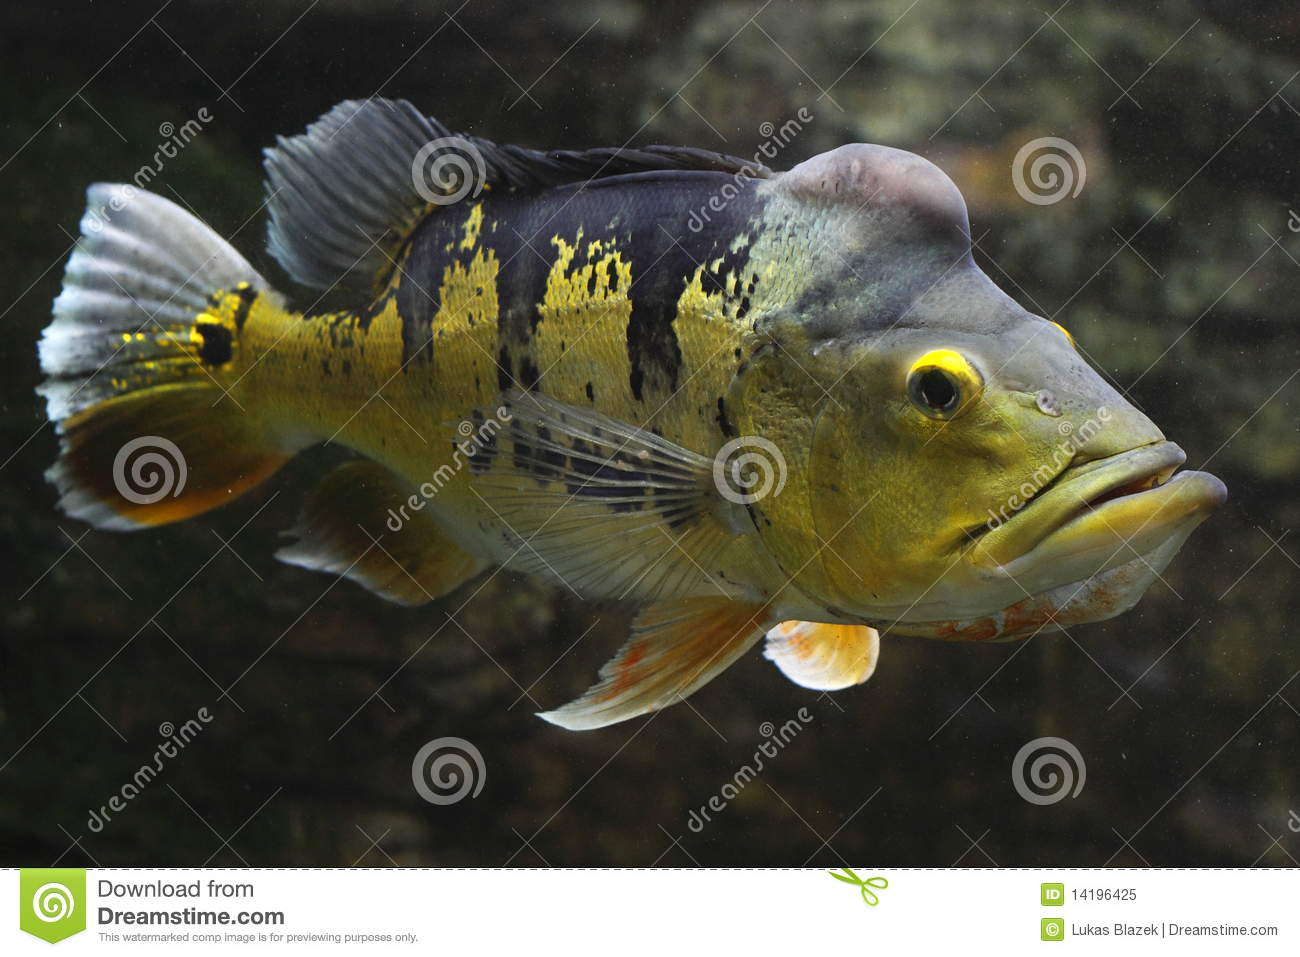 Oscar (Fish) clipart #3, Download drawings